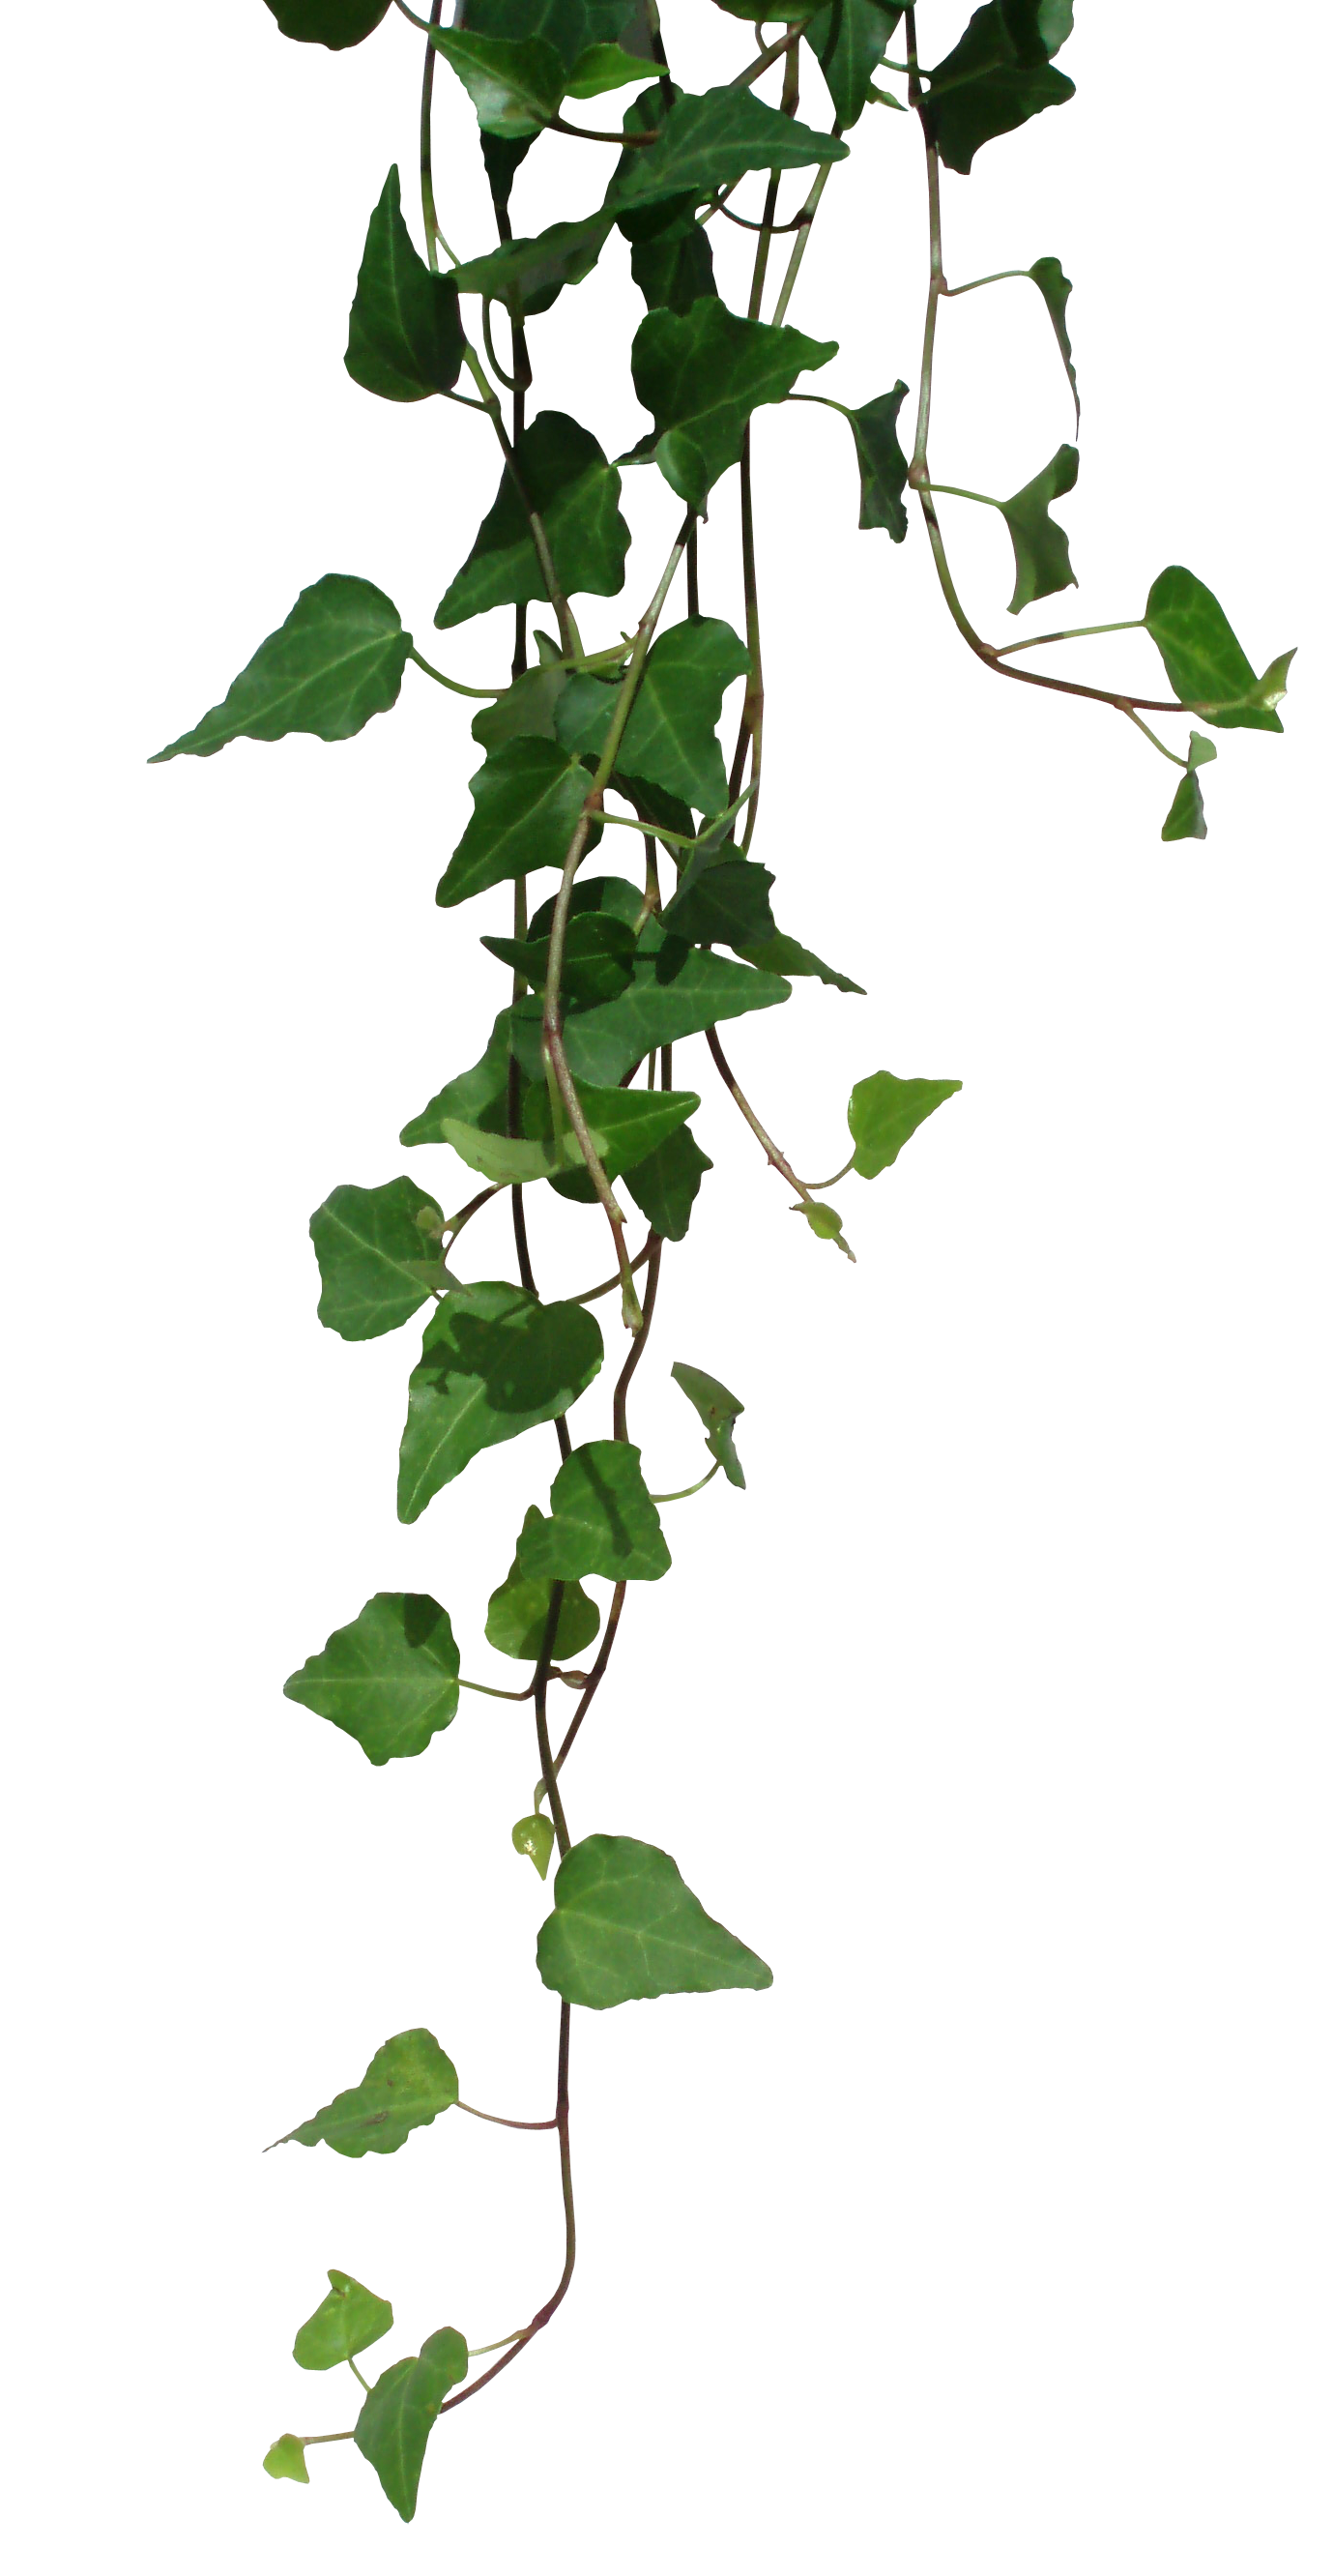 Transparent Vines Png image #43656